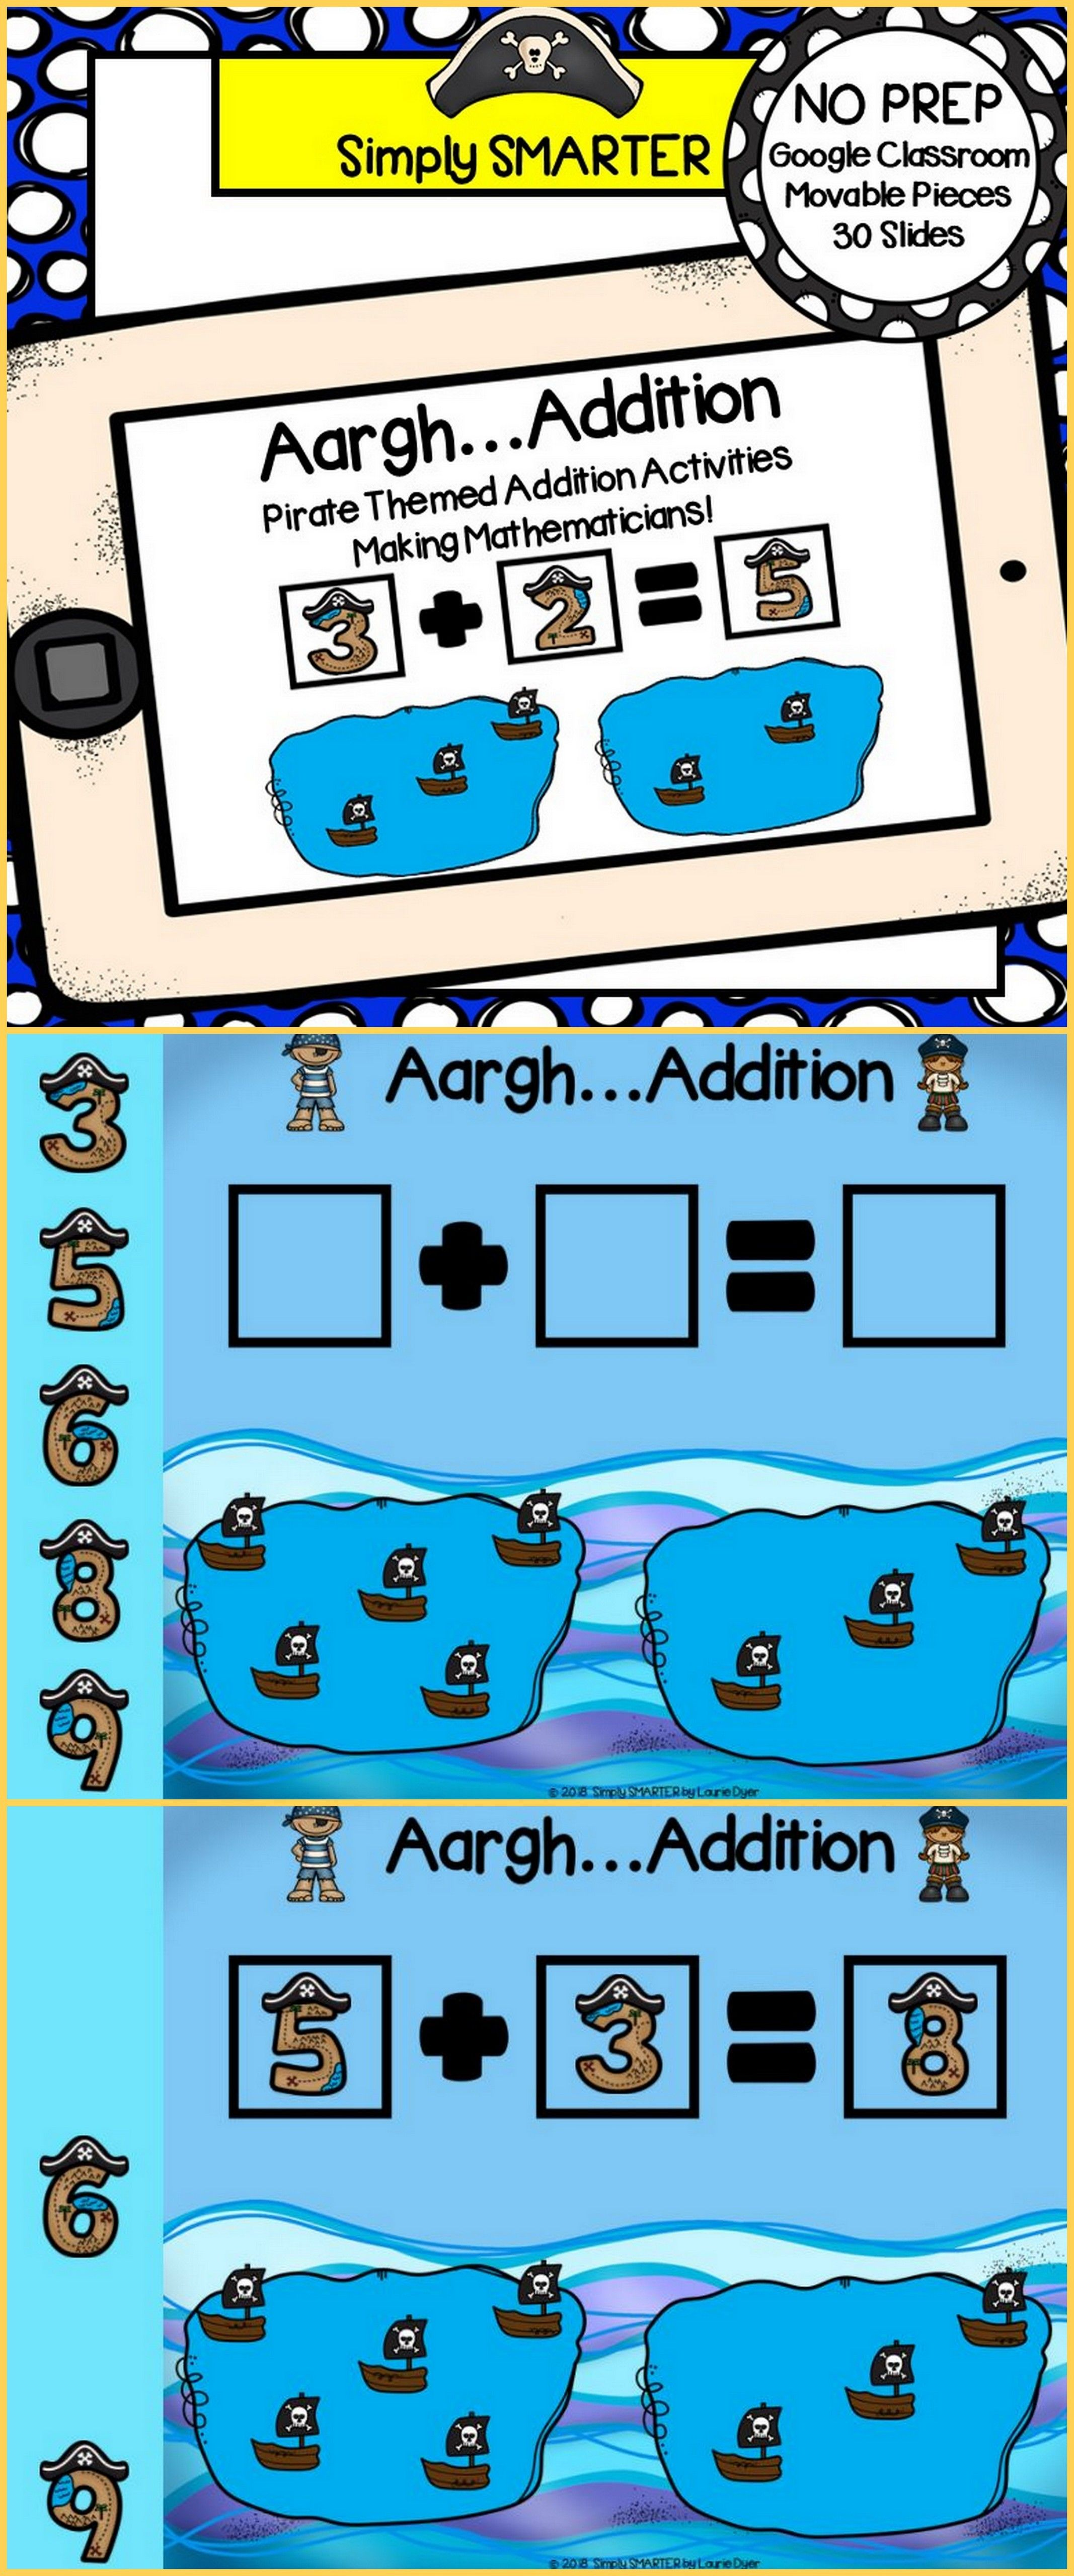 Pirate Themed Addition Activities For Classroom